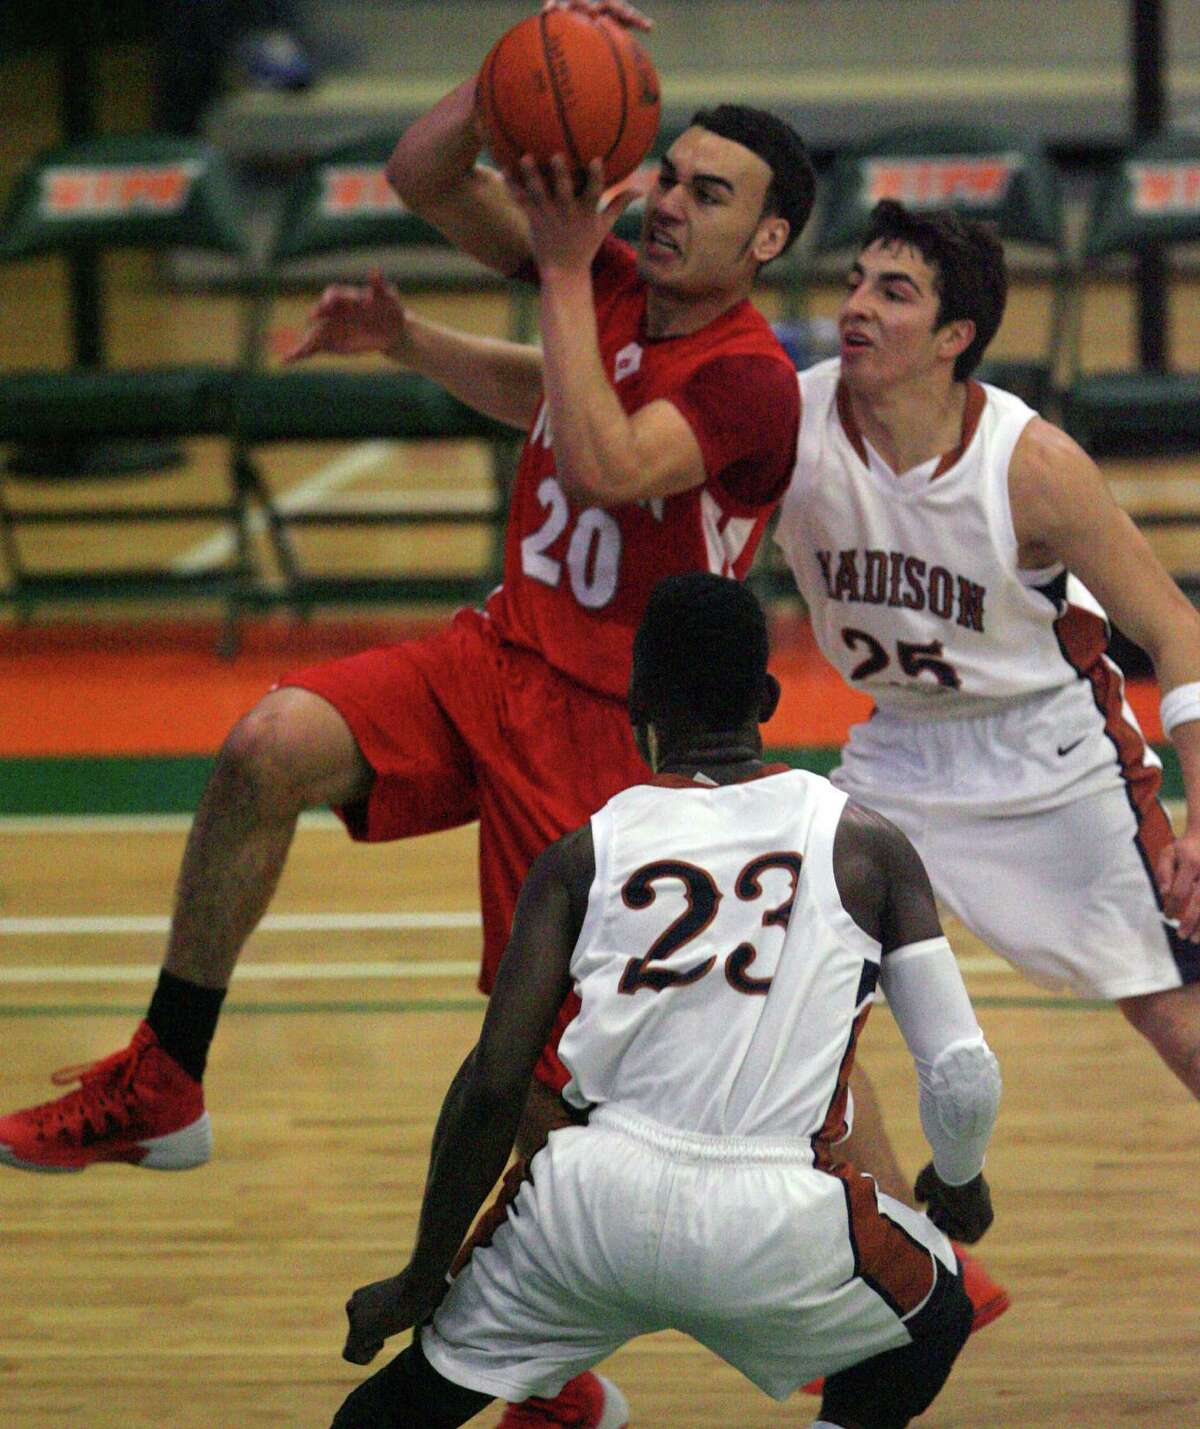 Judson's Tony Allen drives to the basket Saturday against Madison's Ja'Michael Brown and Troy Guajardo in regional play.